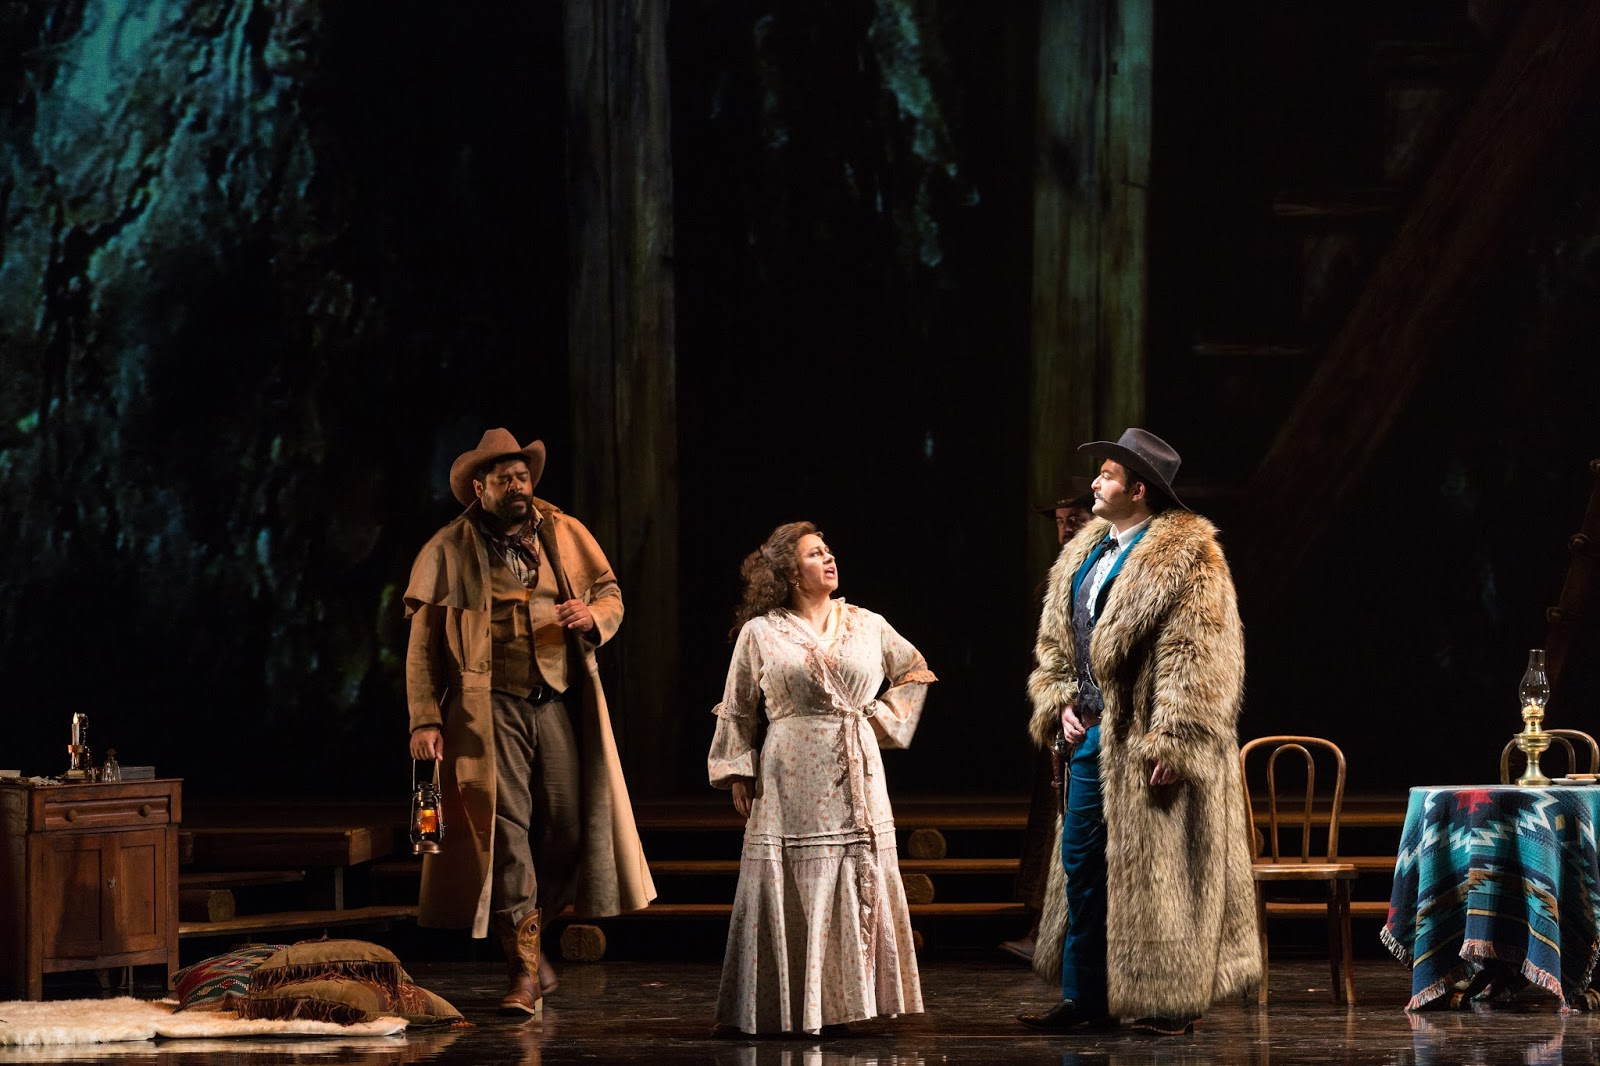 IN PERFORMANCE: (from left to right) Bass-baritone JASON S. MCKINNEY as Ashby, soprano KRISTIN SAMPSON as Minnie, and baritone ALEKSEY BOGDANOV as Jack Rance in Opera Carolina's production of Giacomo Puccini's LA FANCIULLA DEL WEST, April 2017 [Photo by Mitchell Kearney, © by Opera Carolina]